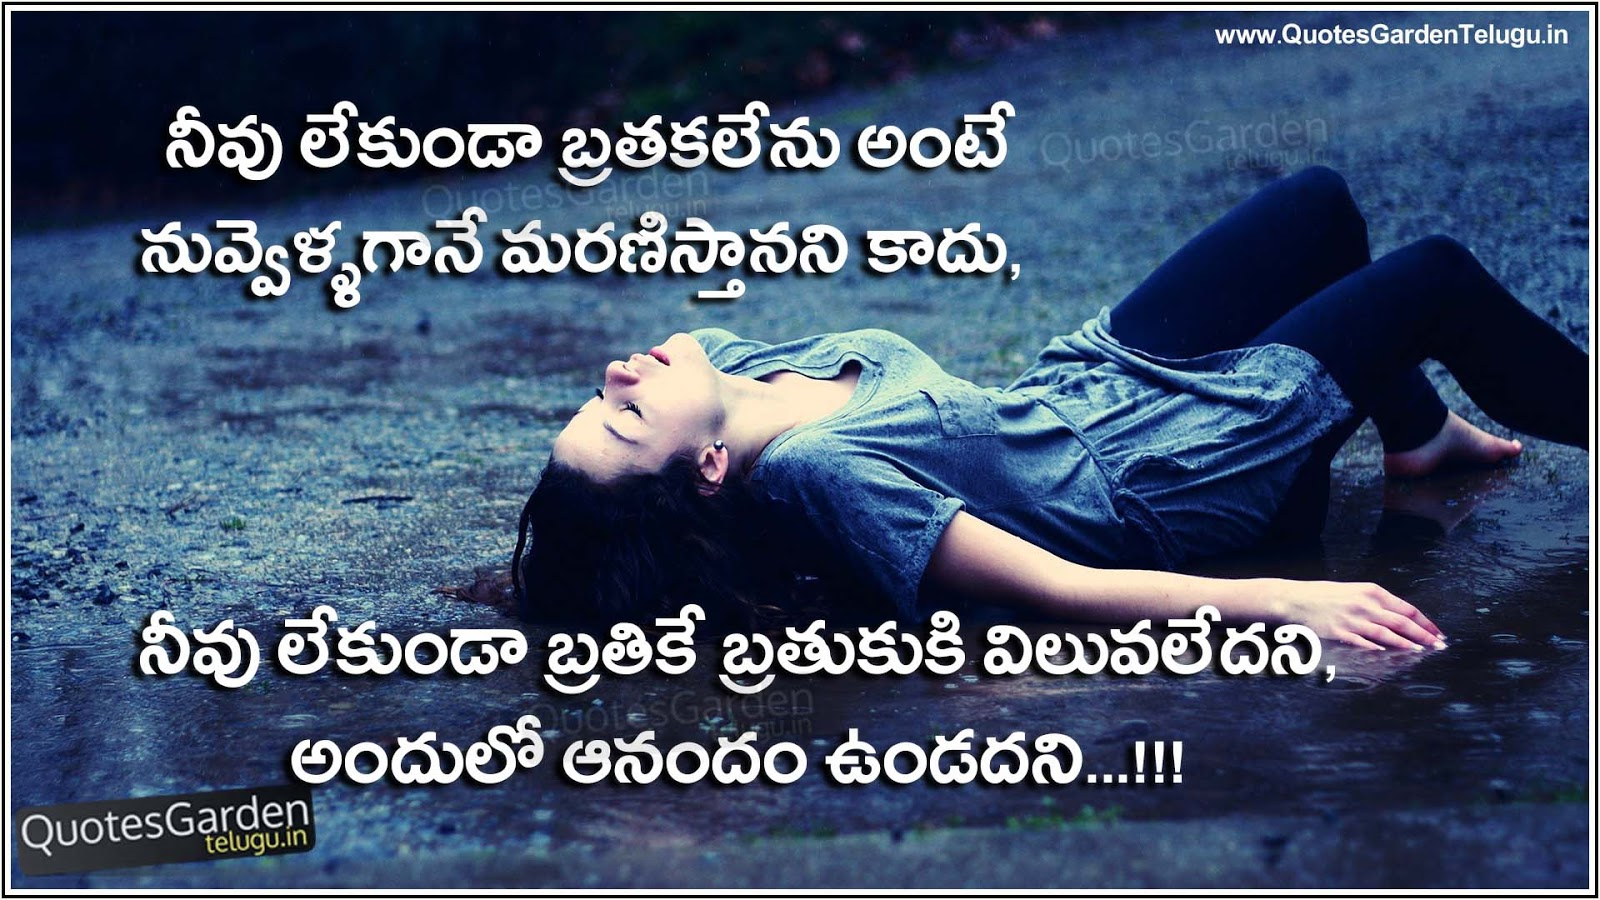 Telugu Love Quotes Stunning Telugu Love Quotations With Beautiful Love Wallpapers  Quotes